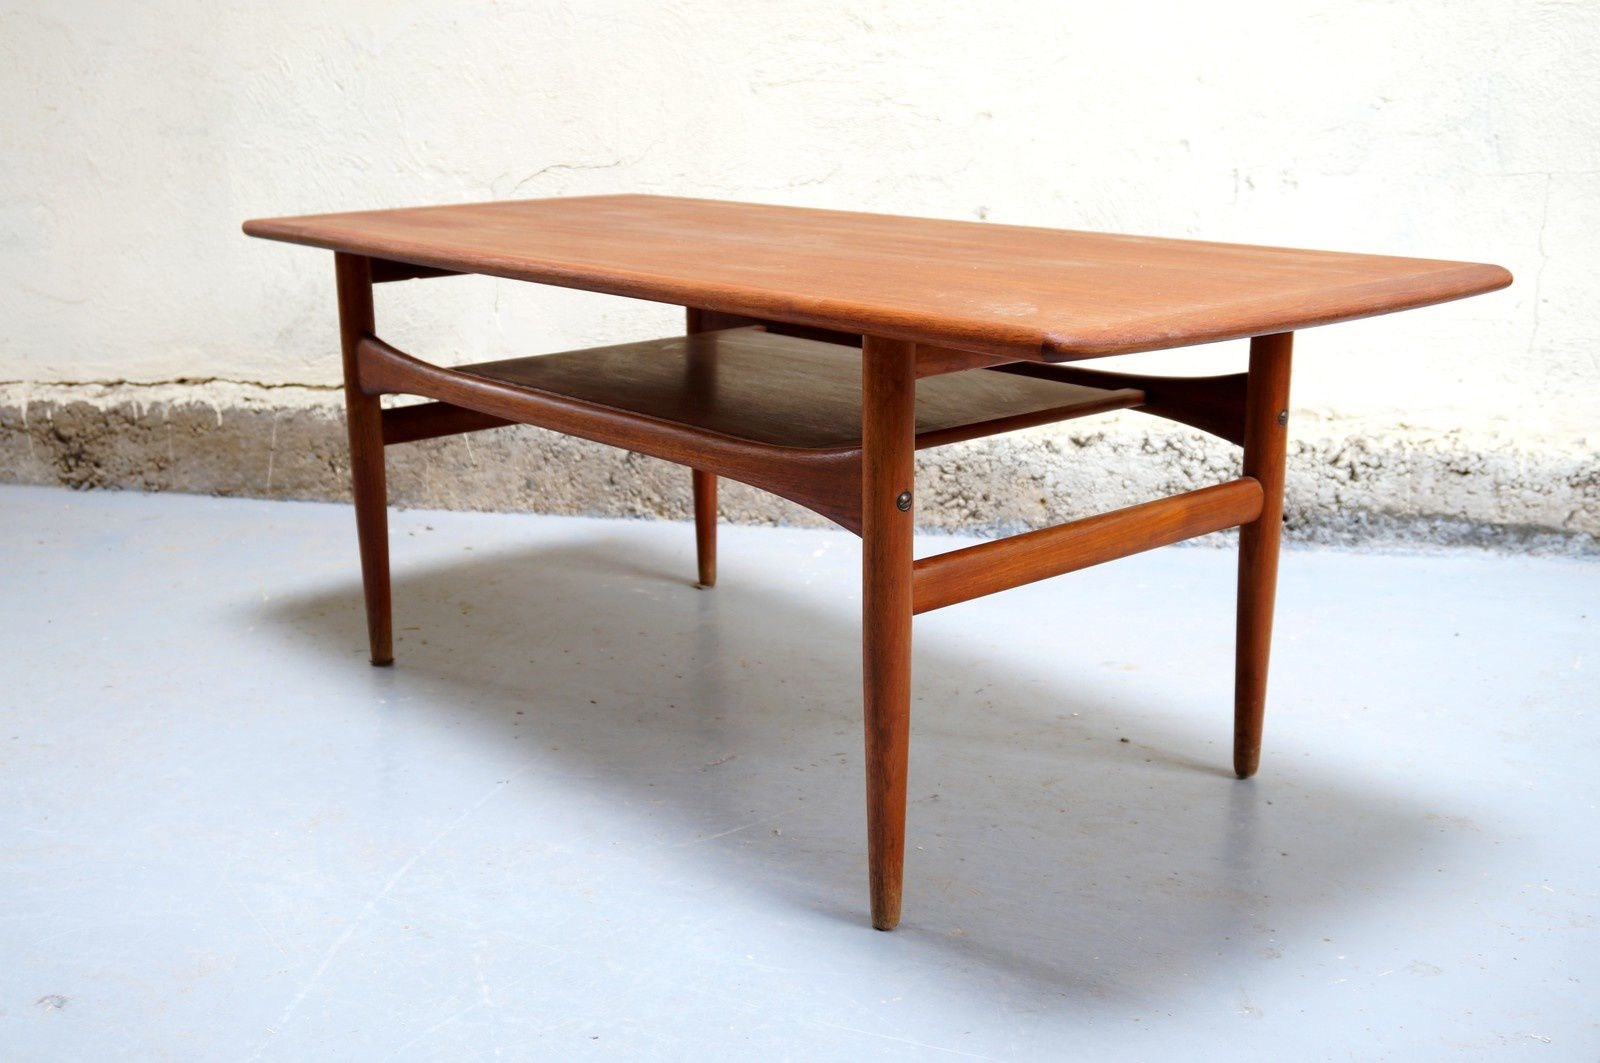 Table basse scandinave arrebo mobler danois vintage danish for Table basse blanc scandinave